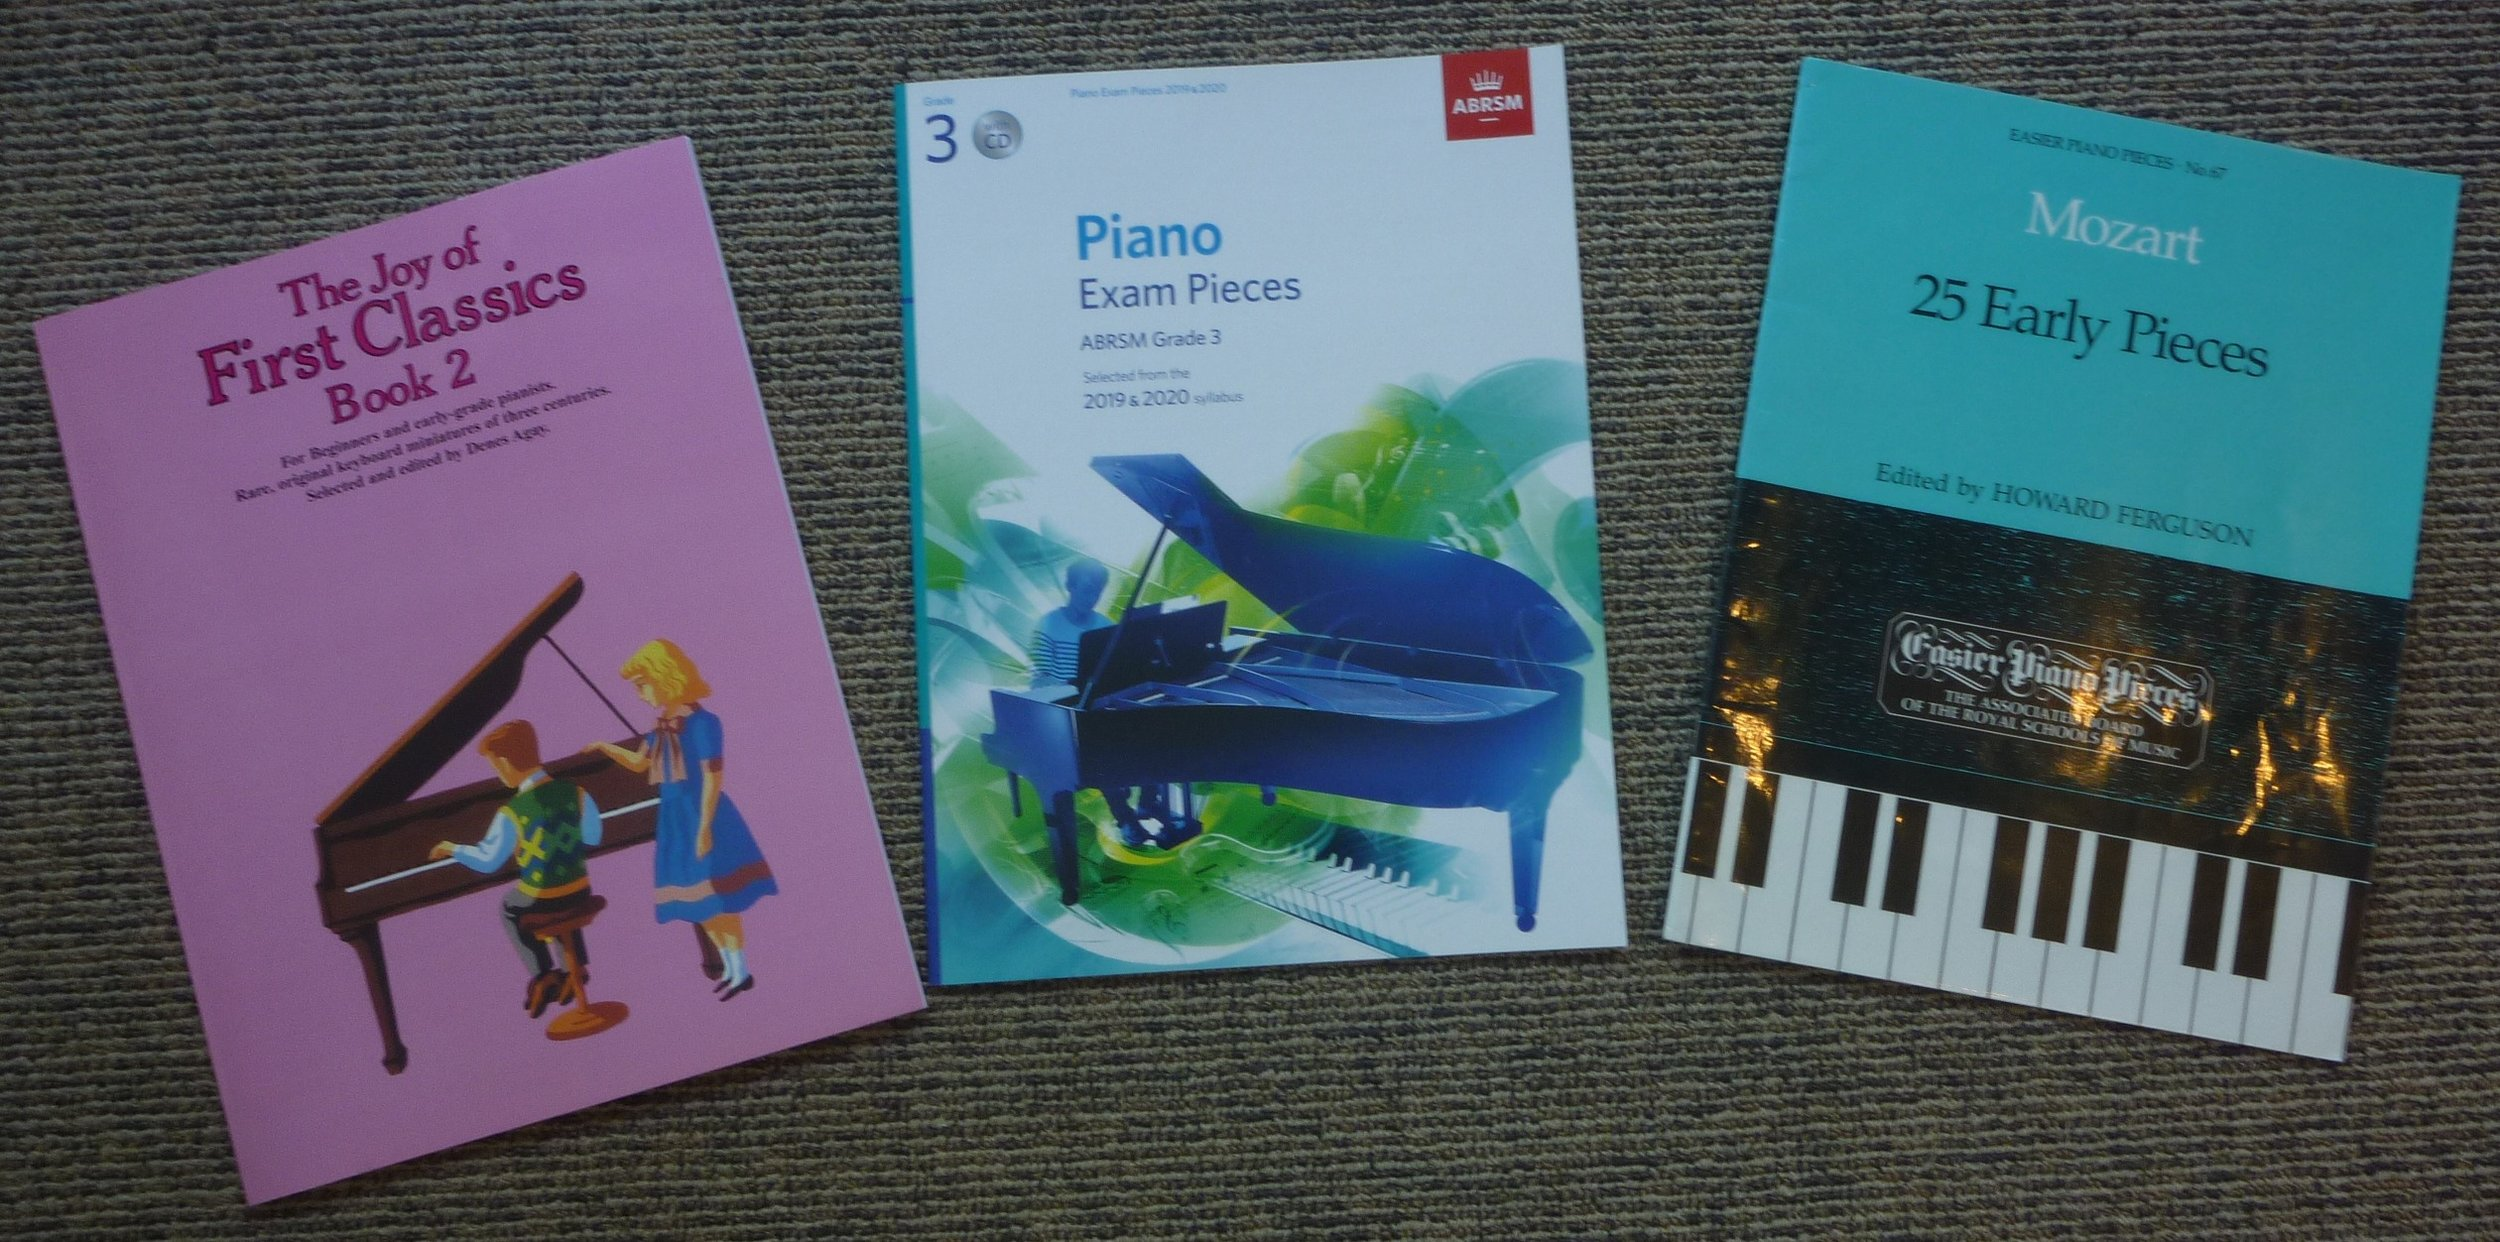 ABRSM Grade 3 Piano Exam Pieces 2019-2020 A section comments